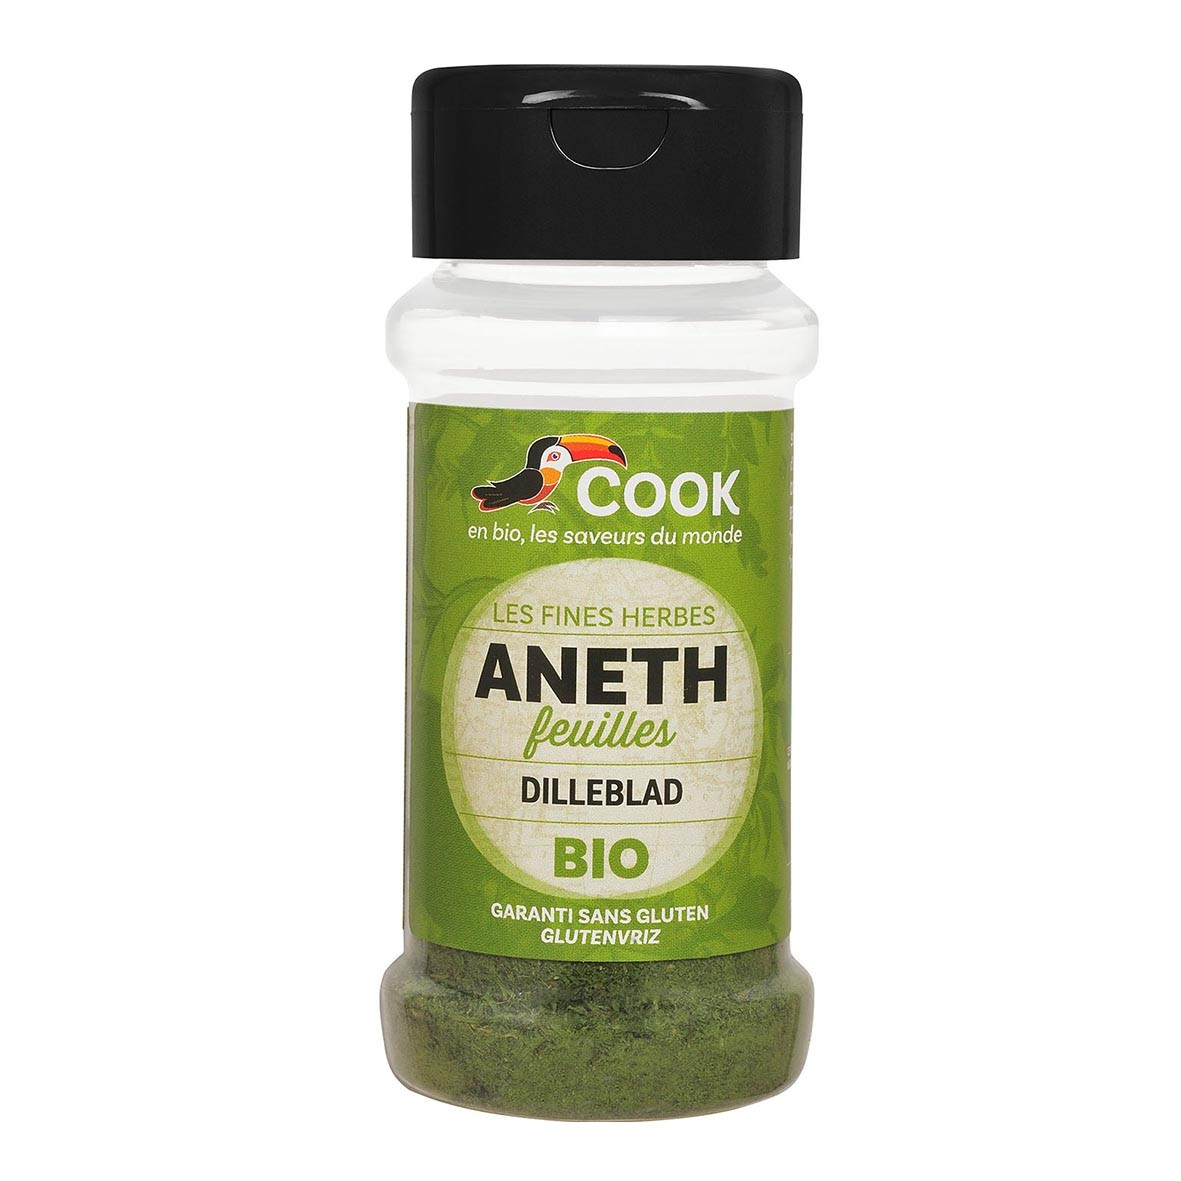 Cook - Aneth feuilles 15g bio